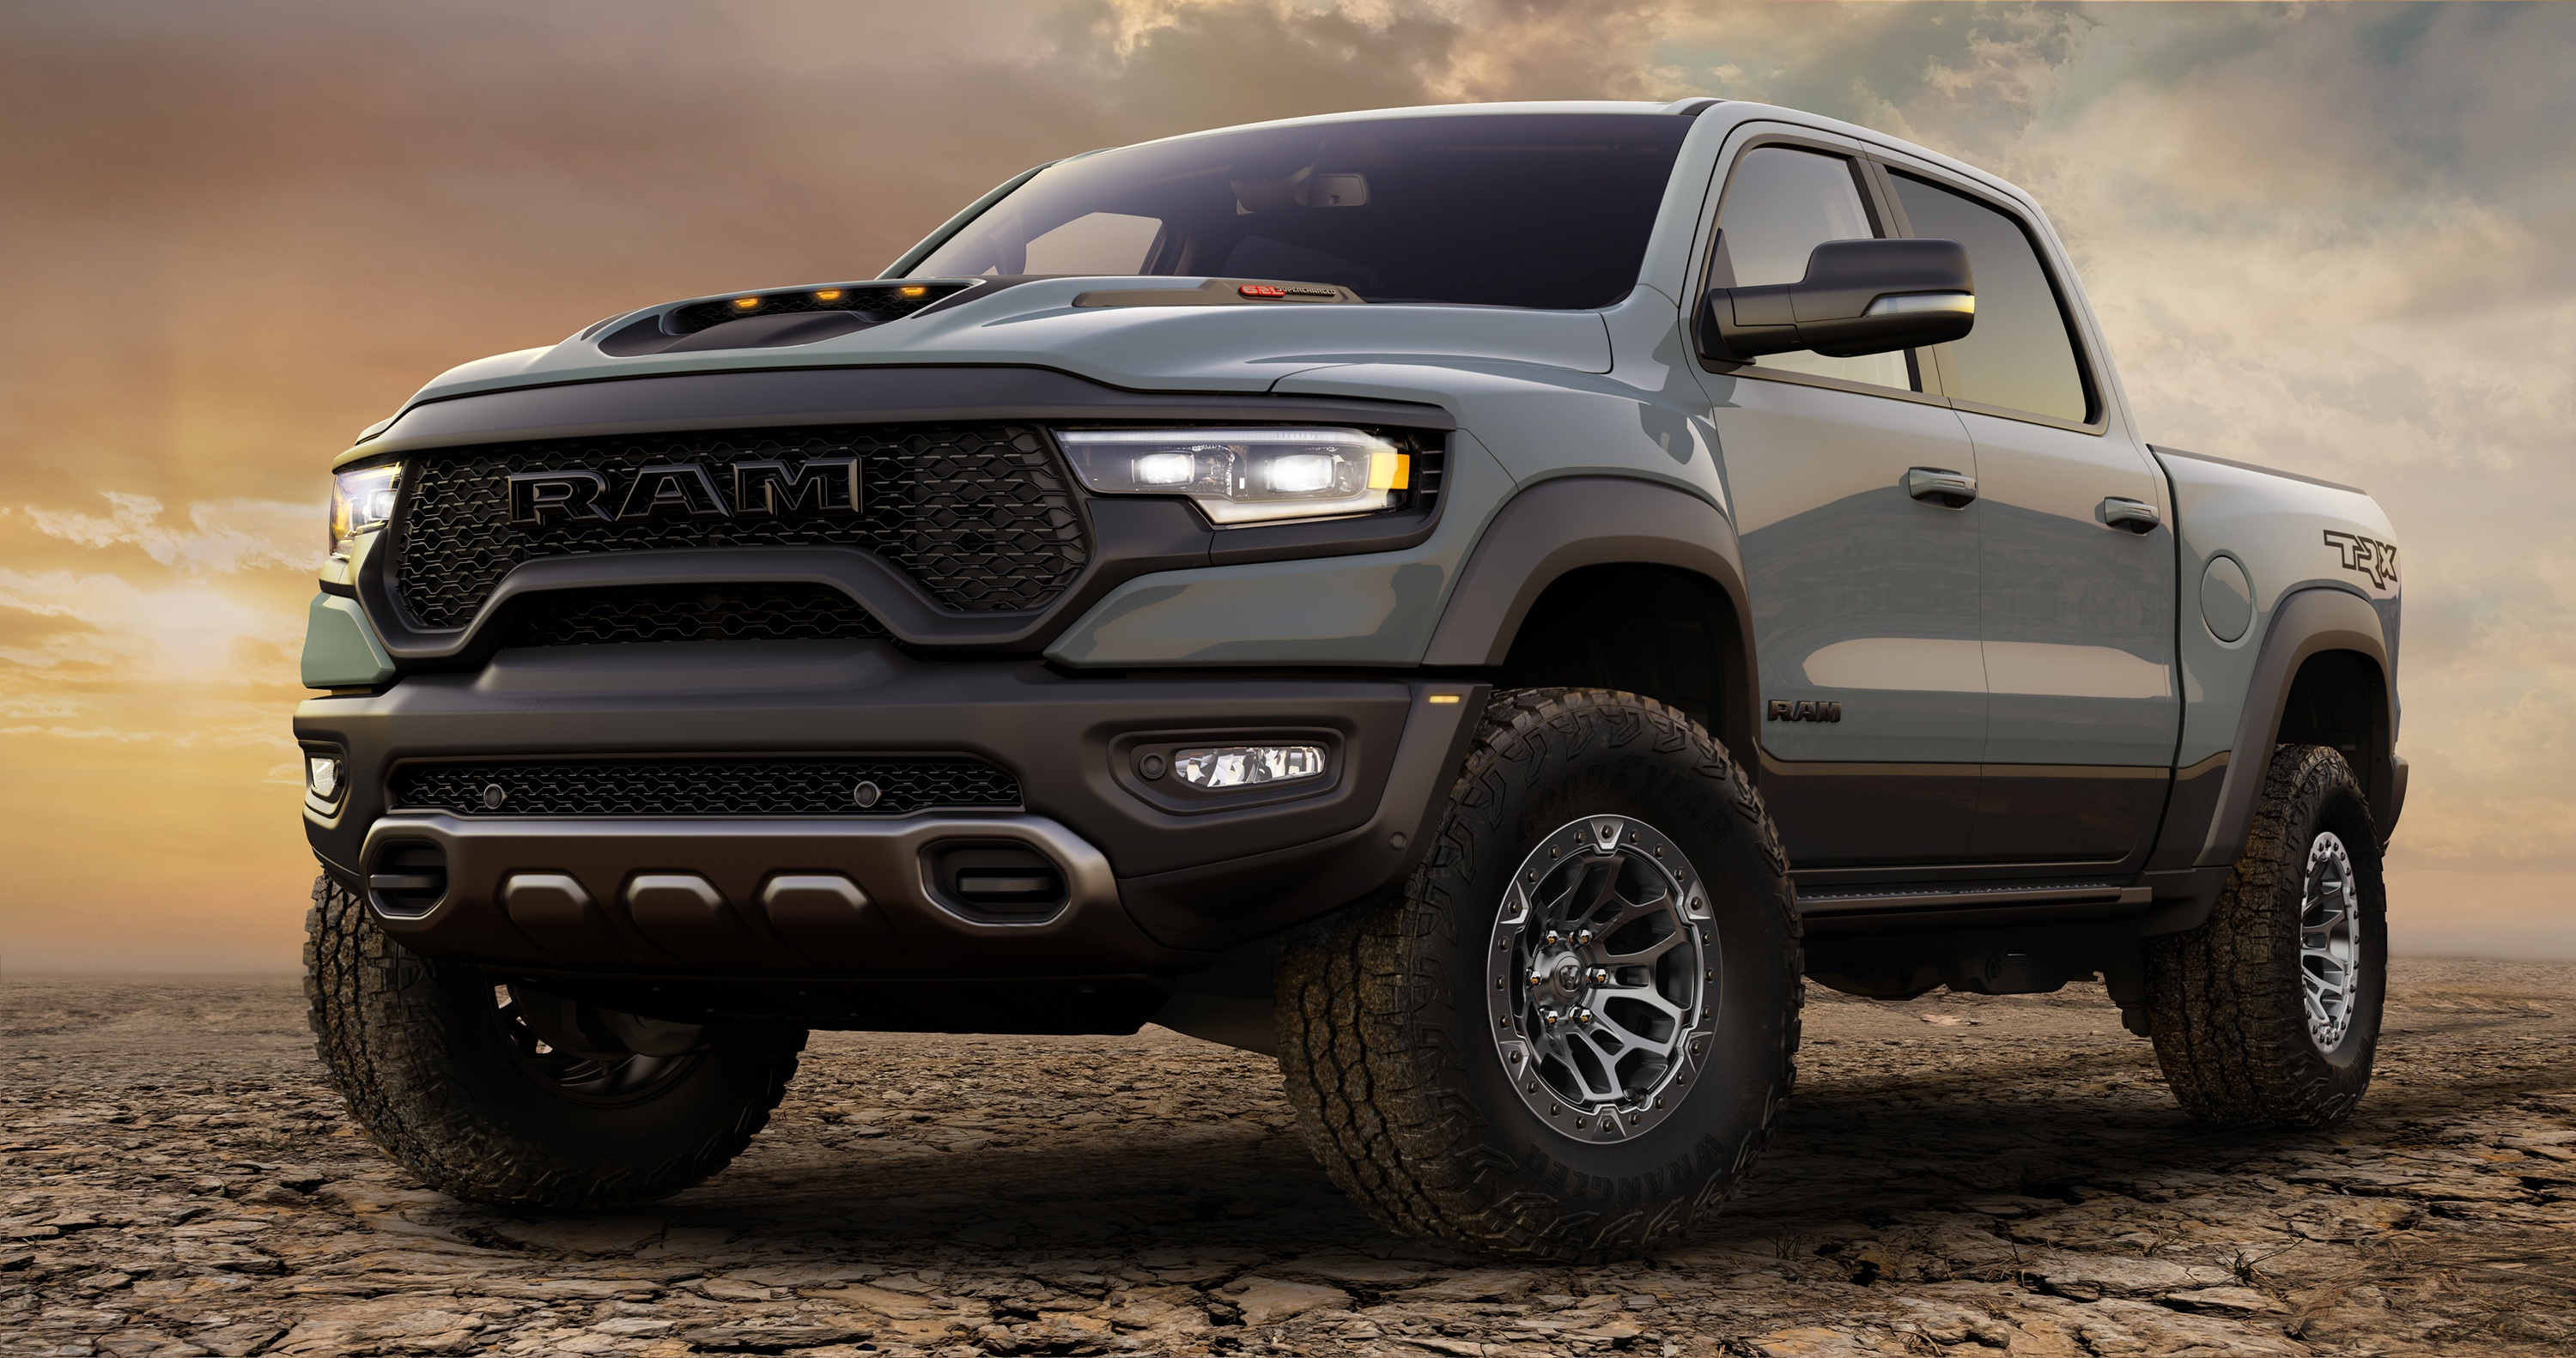 RAM TRX Launch Edition Sold Out: All 702 Orders for Ram 1500 TRX Launch Edition Filled in Less Than One Day